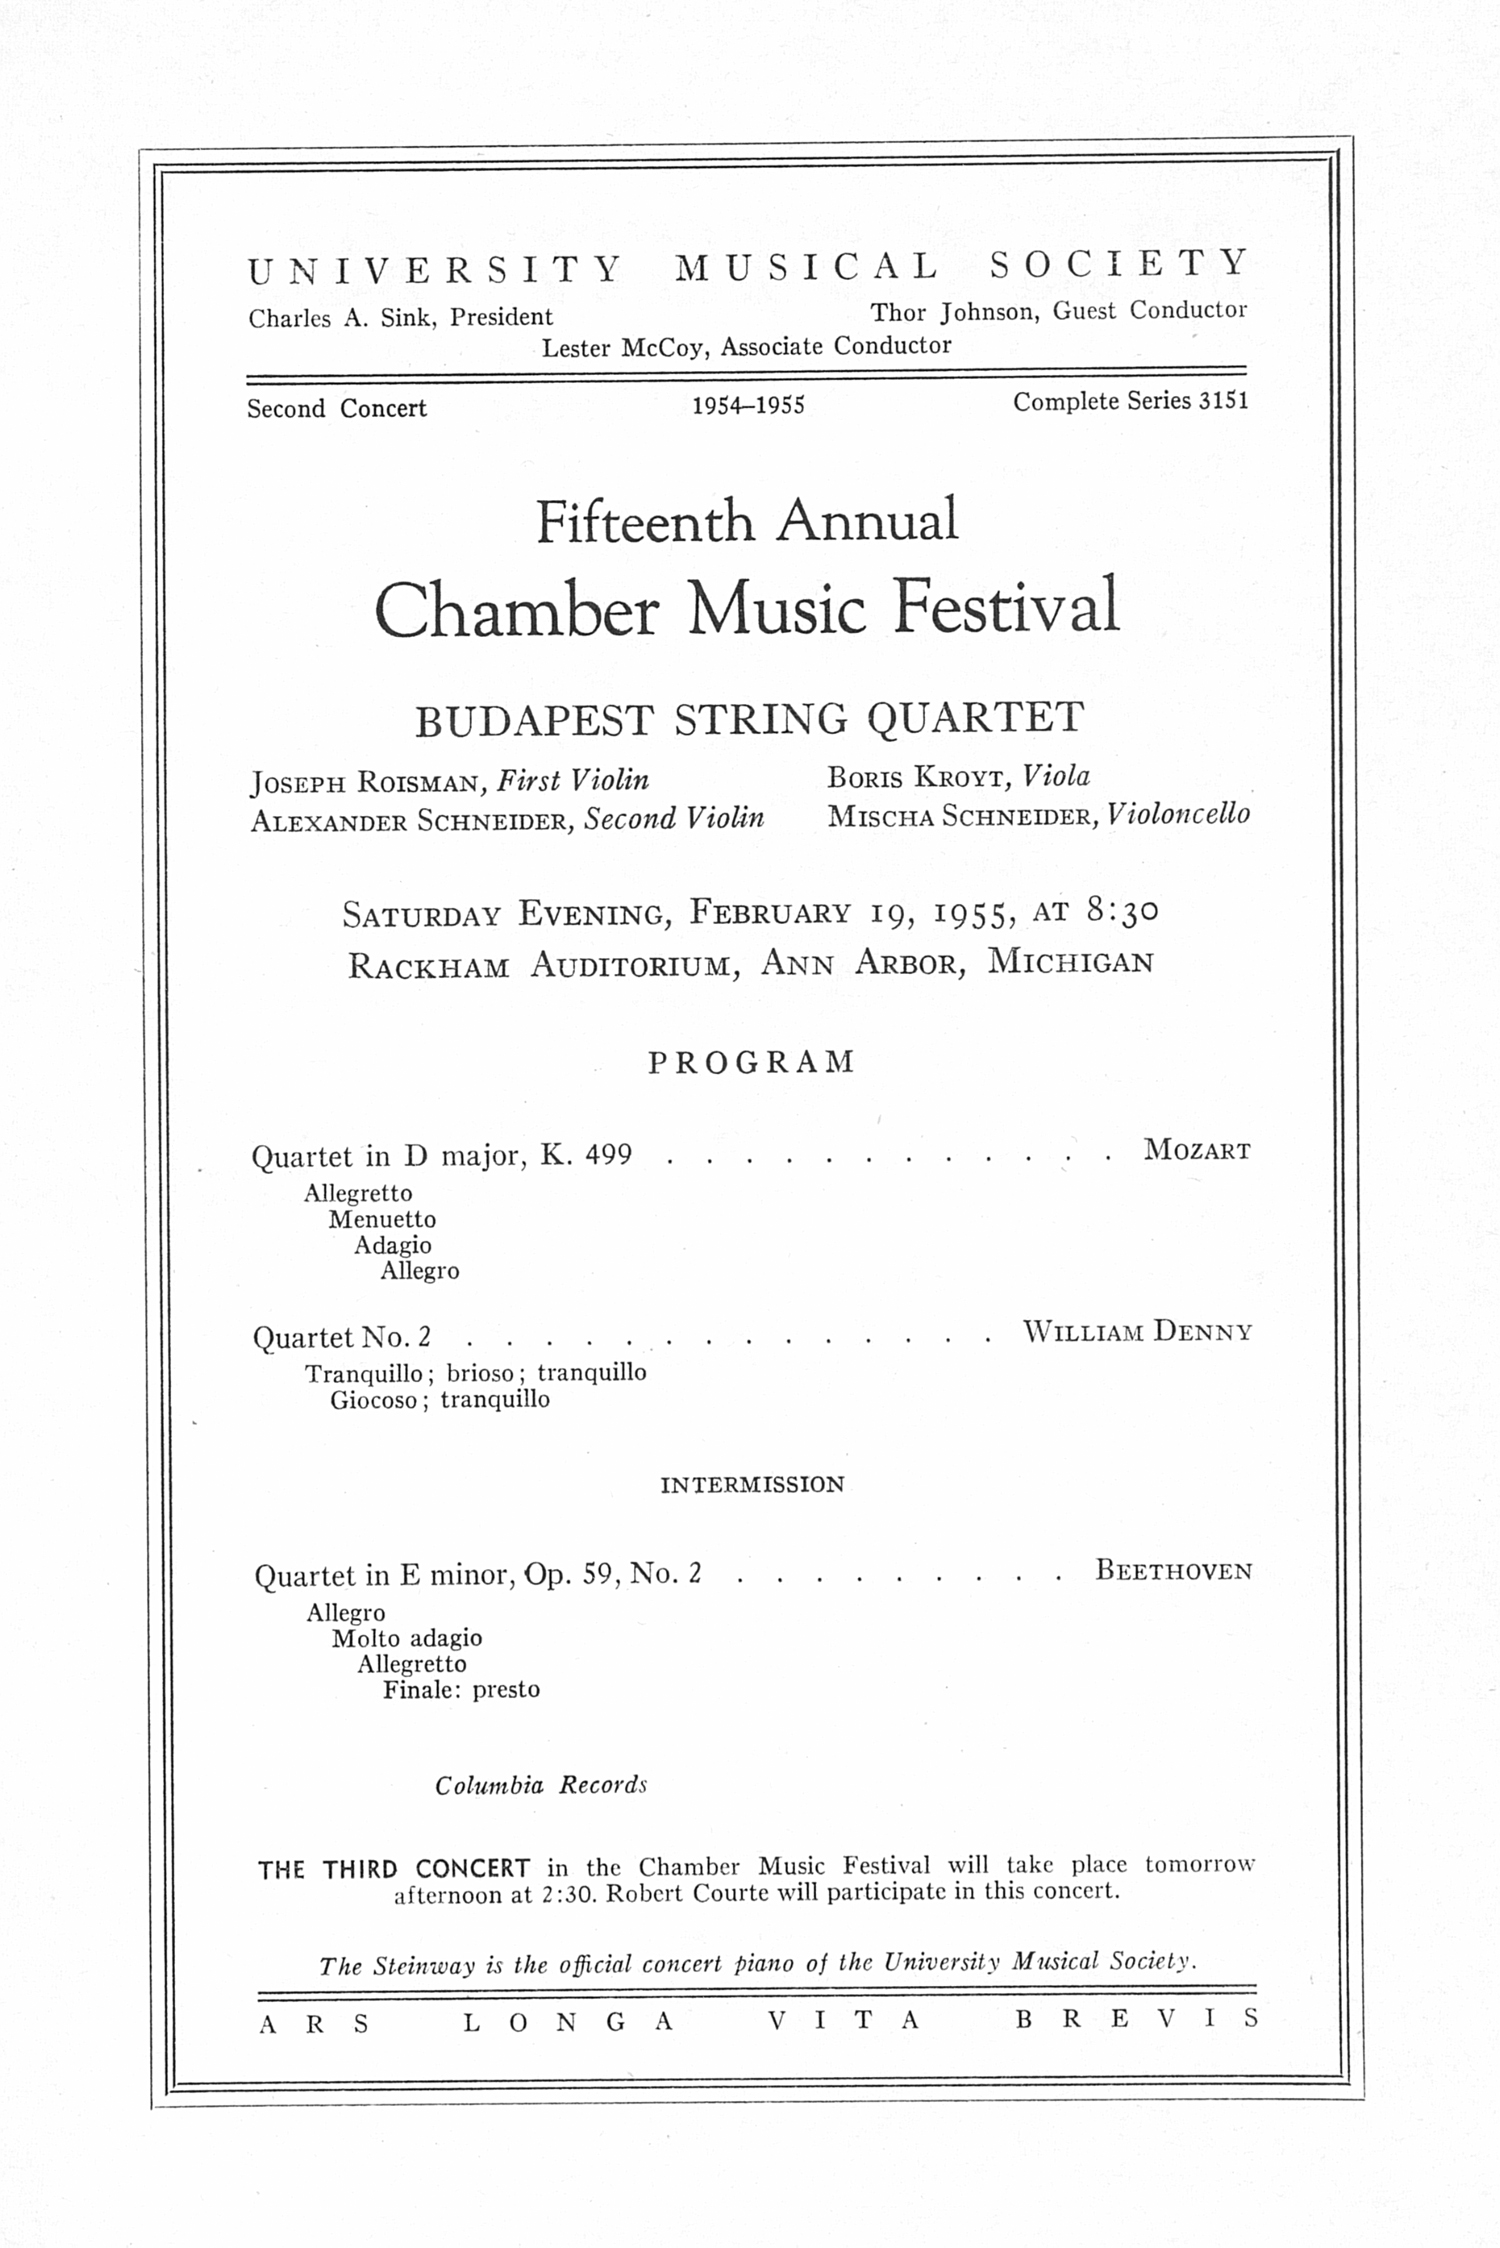 UMS Concert Program, February 19, 1955: Fifteenth Annual Chamber Music Festival -- Budapest String Quartet image